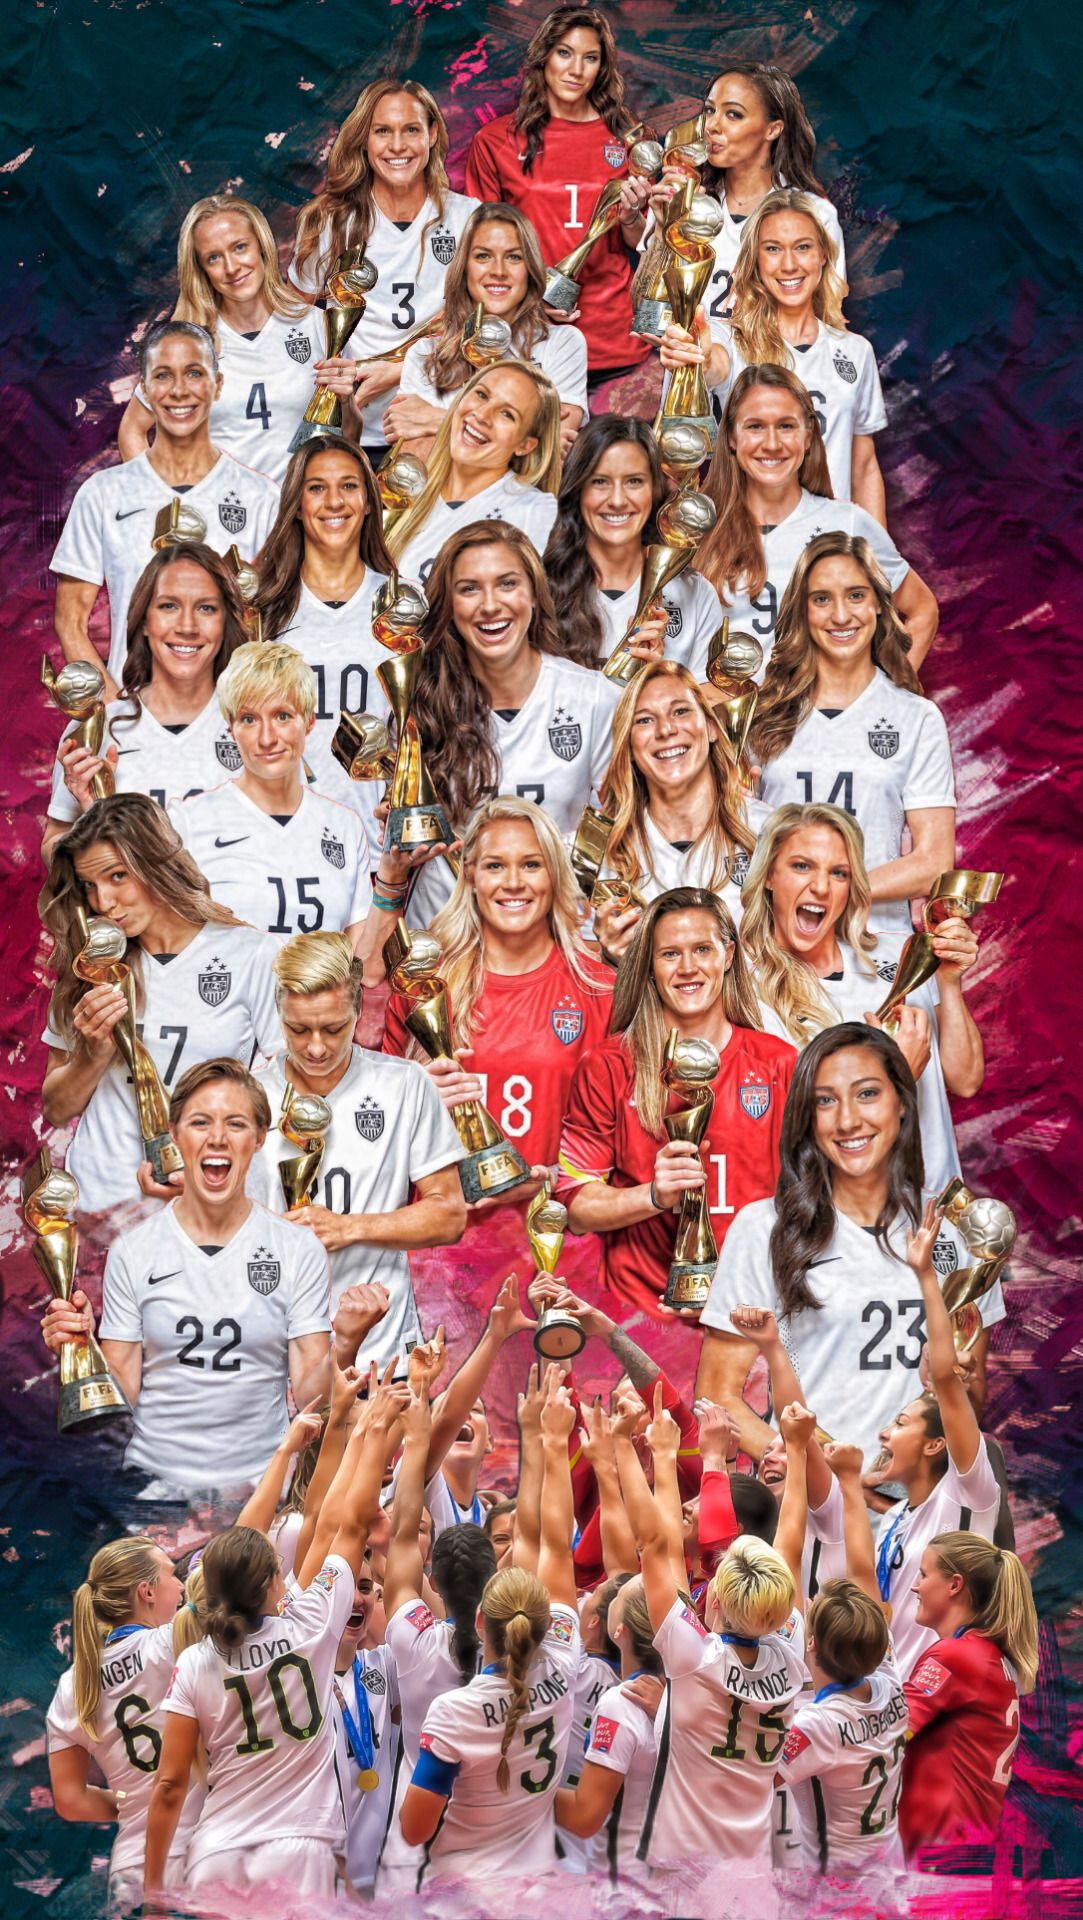 Uswnt Girlpower Another Win Four World Cup Wins 1991 1999 2015 And 2019 Usa Soccer Team Girls Soccer Team Usa Soccer Women